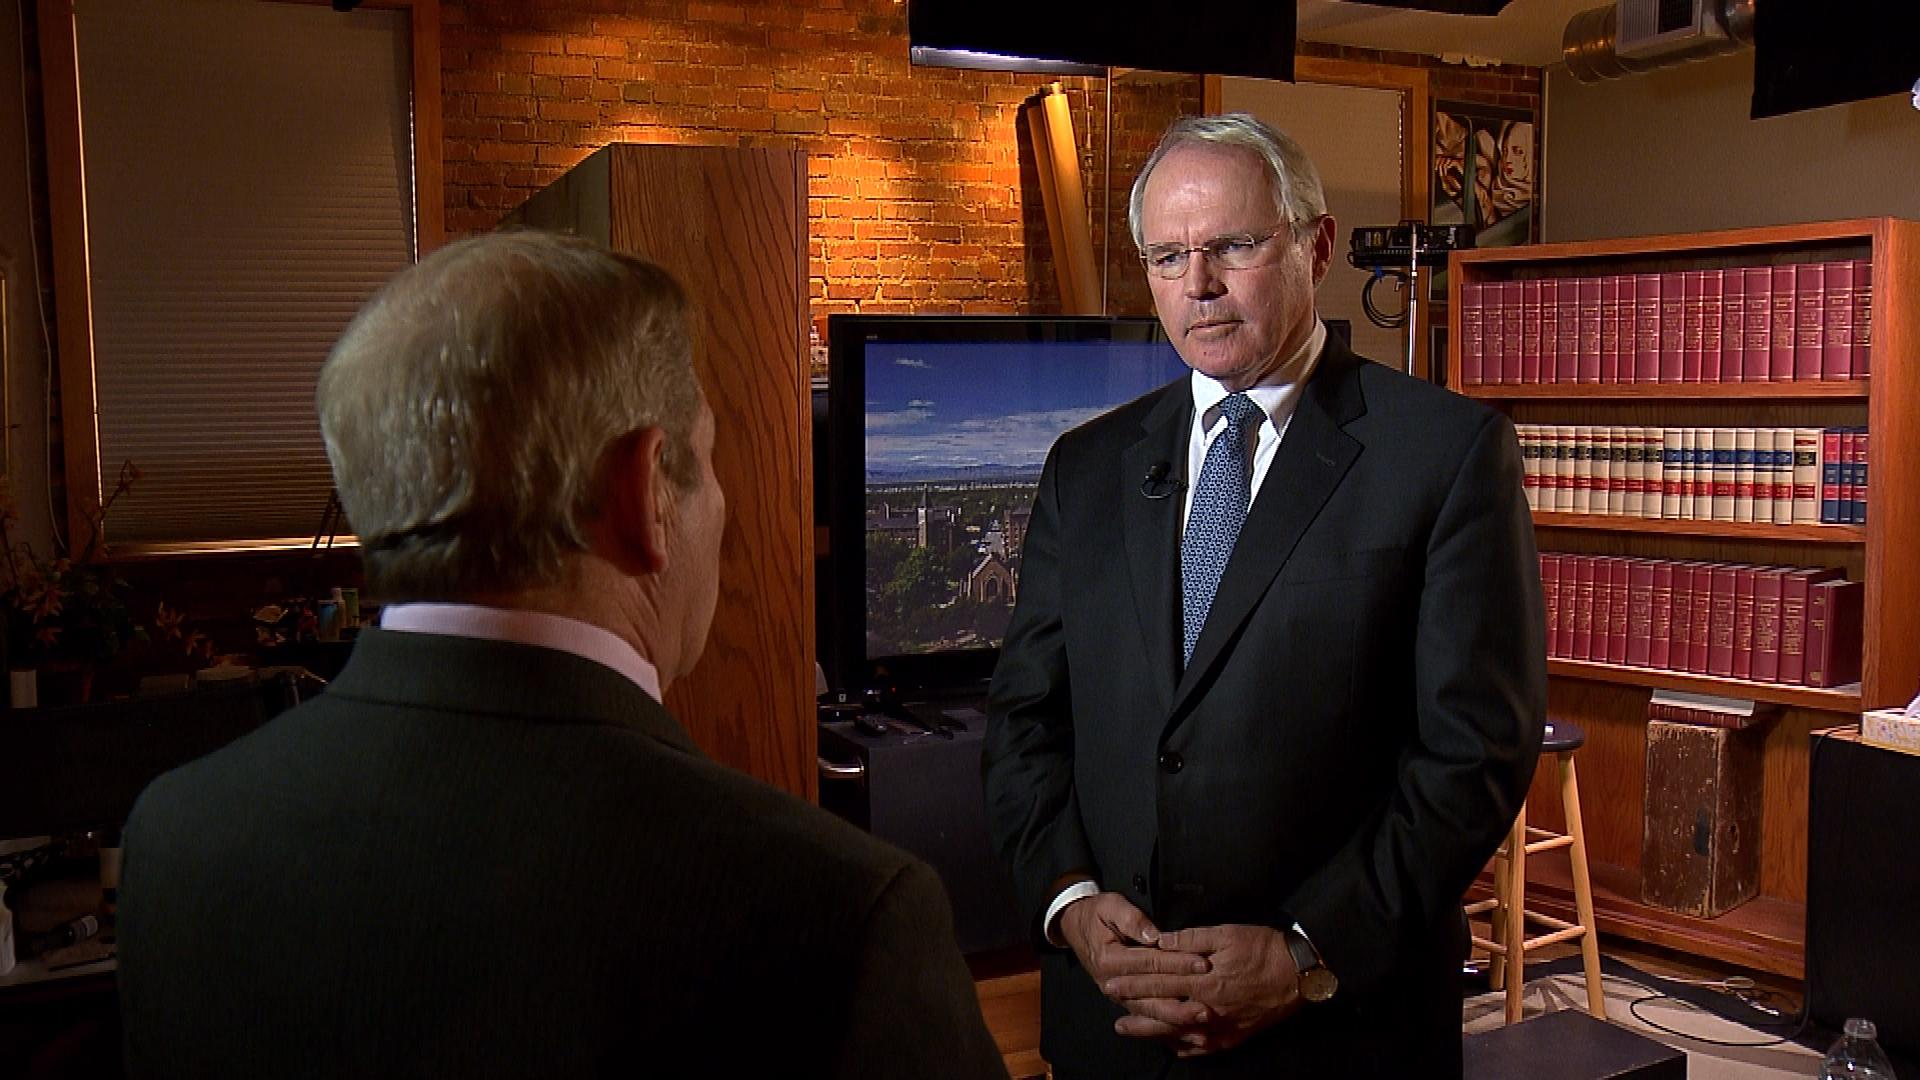 CBS4's Rick Sallinger interviews Dr. Chris Hill (credit: CBS)